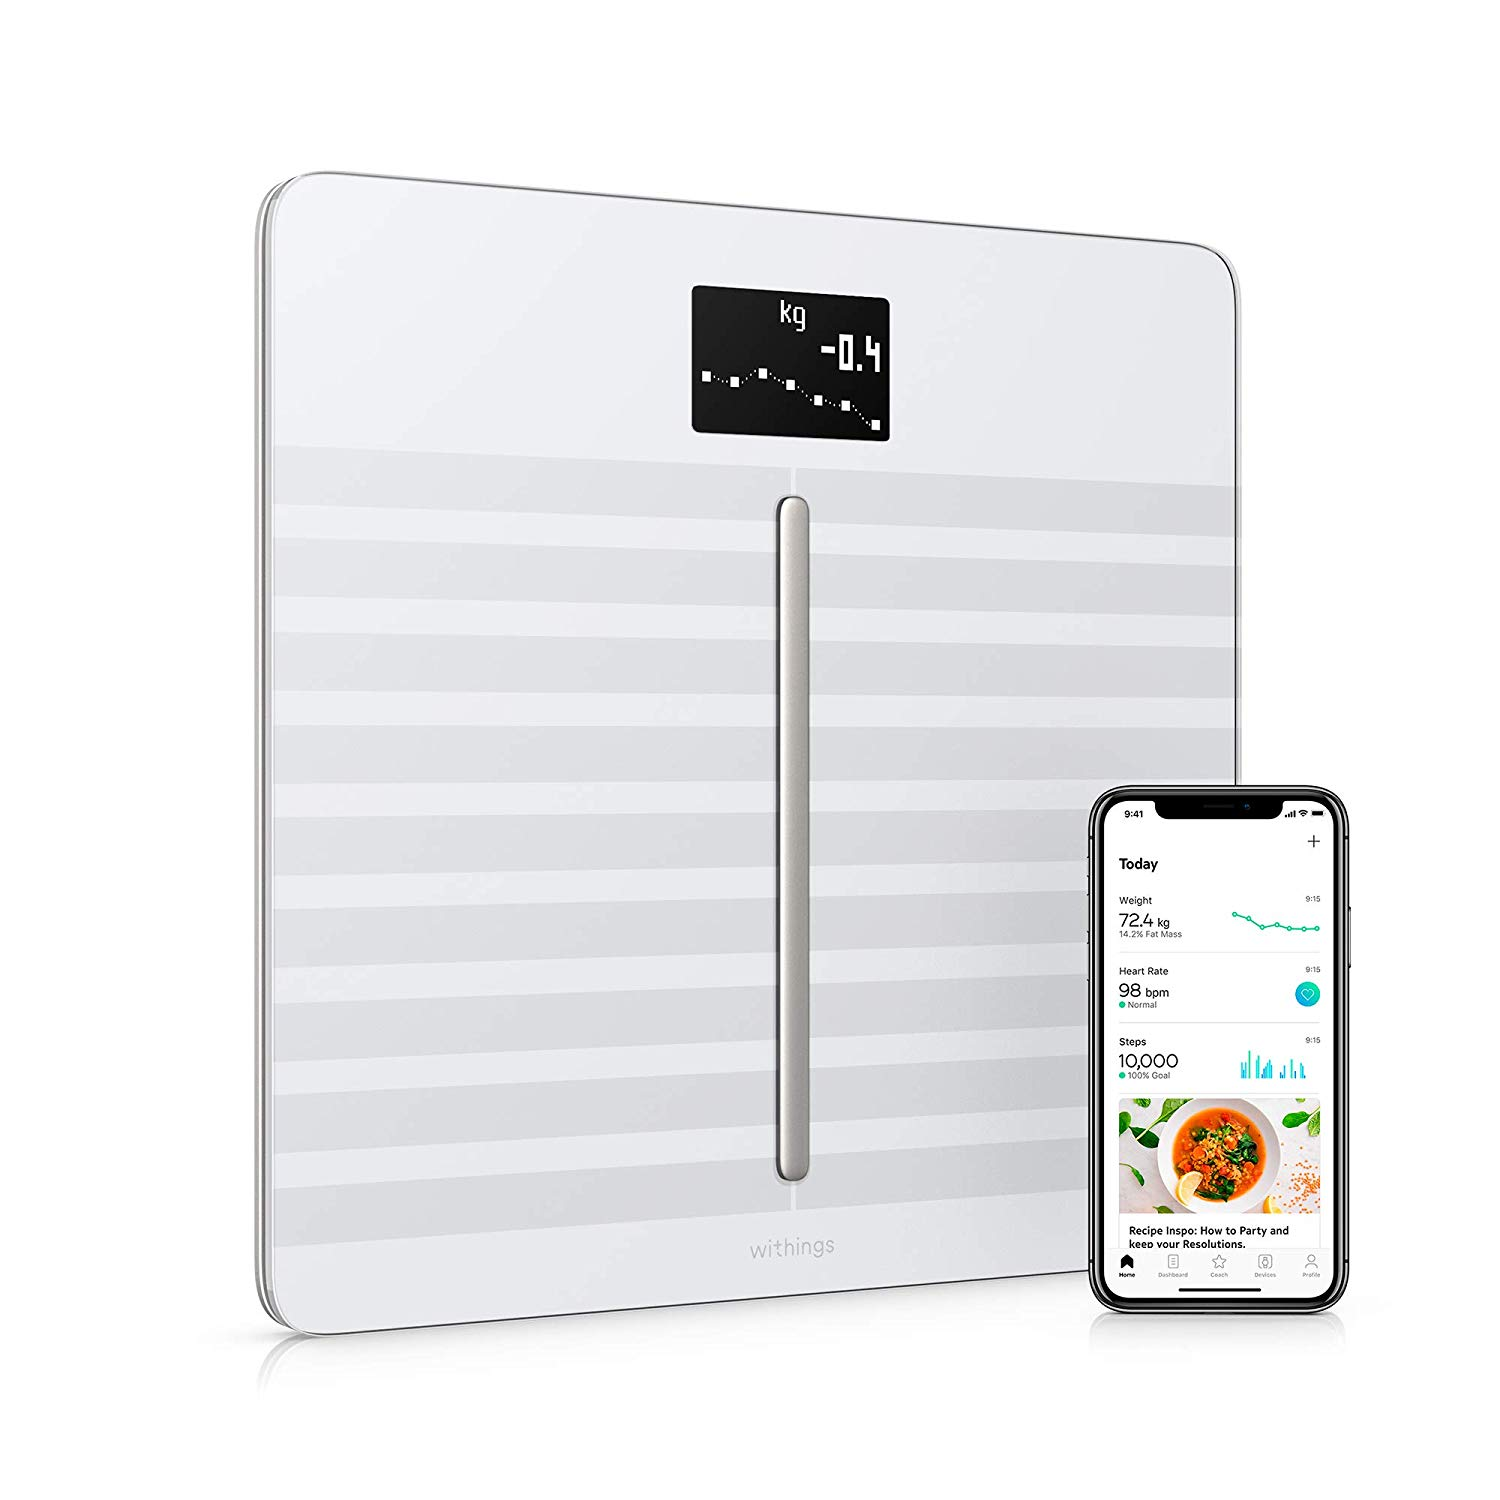 Best Smart Scale 2020.Working Out With Apple Watch These Smart Scales Sync Weight